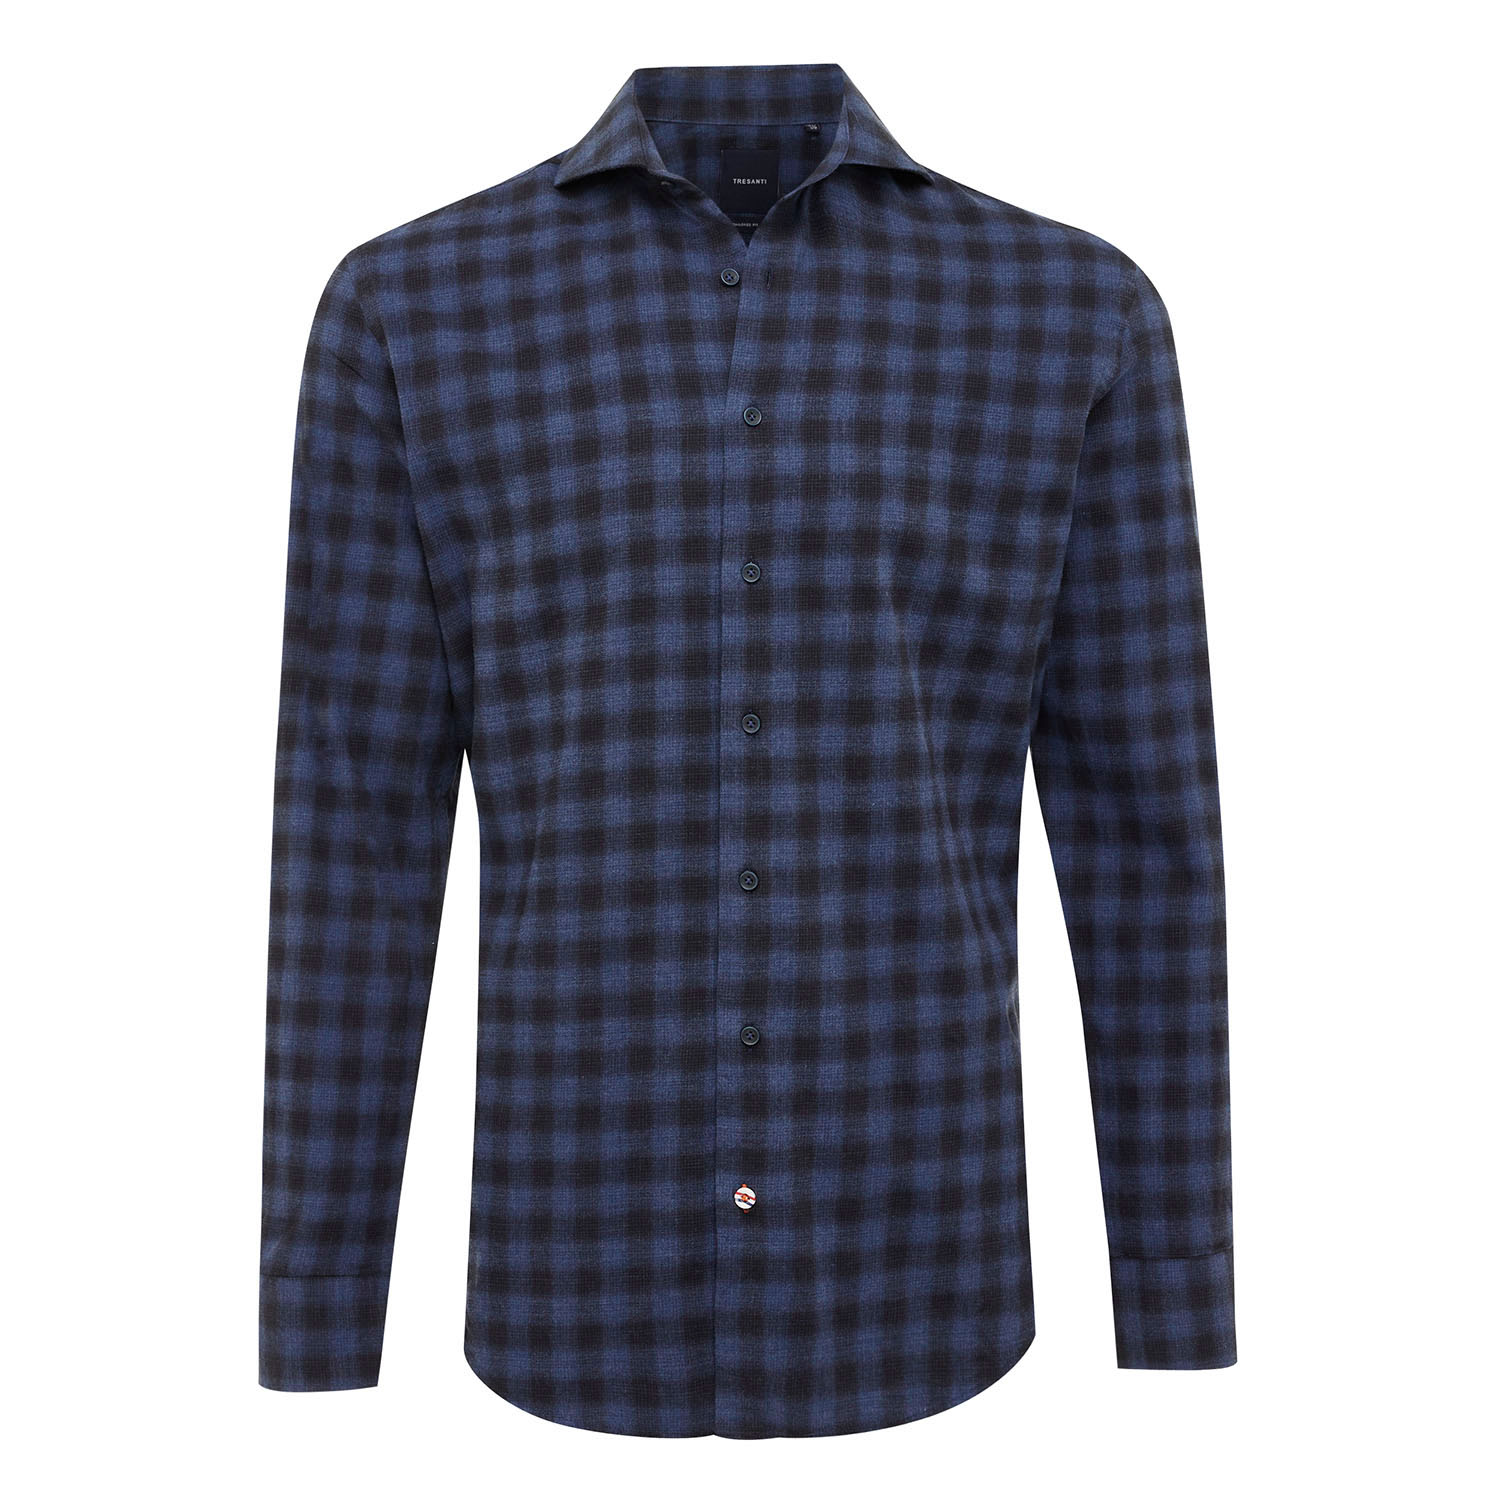 ELWYN | Shirt with button closure, navy with structure